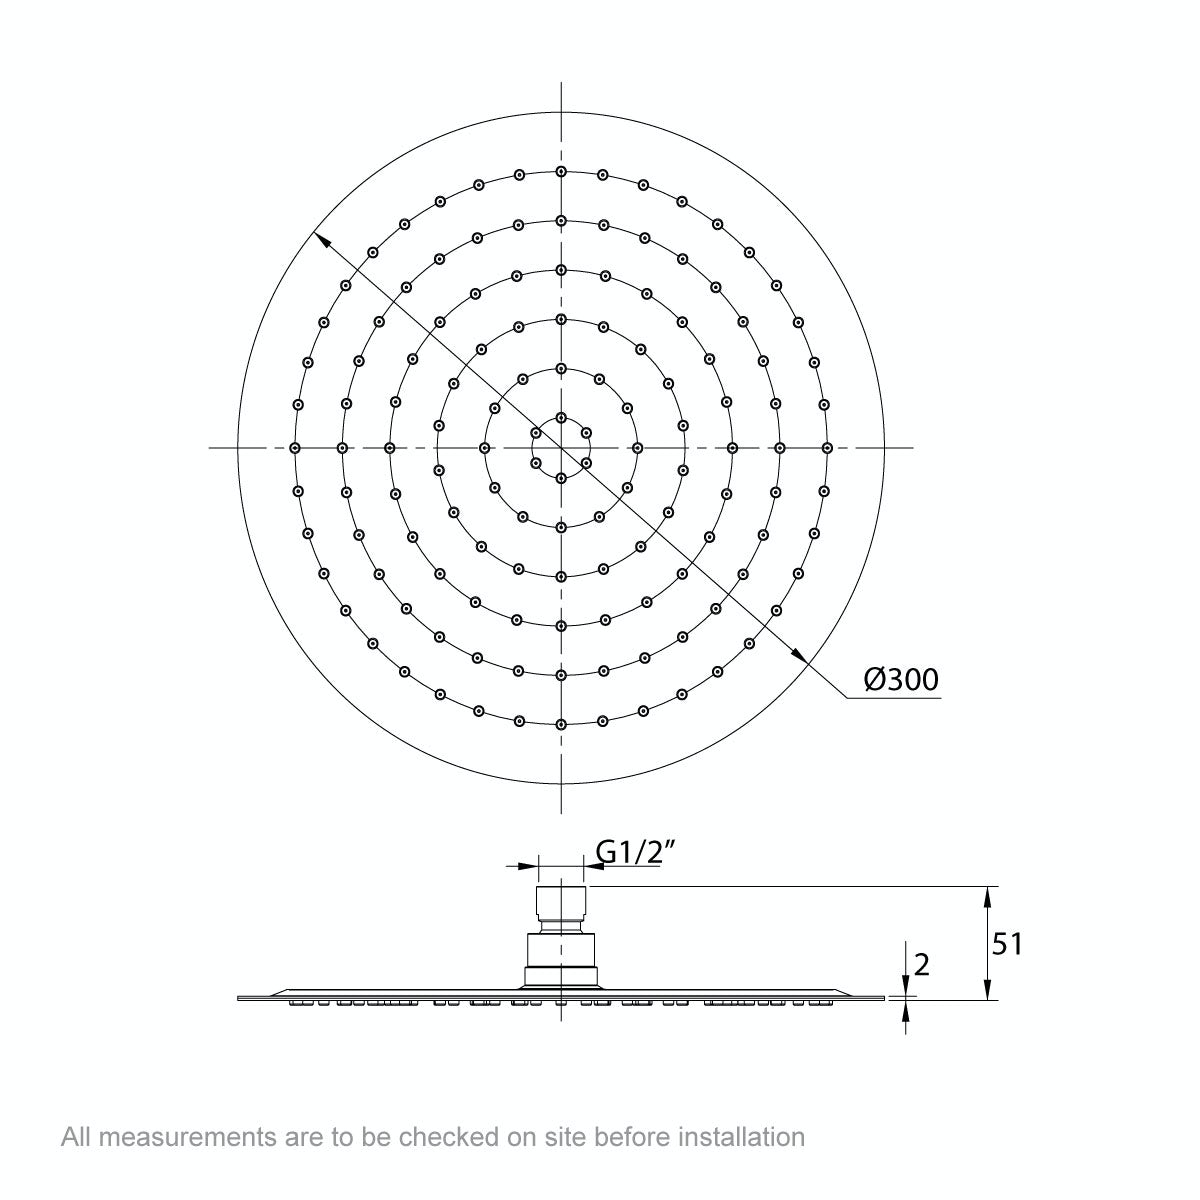 Dimensions for Mode Renzo round slim stainless steel shower head 300mm